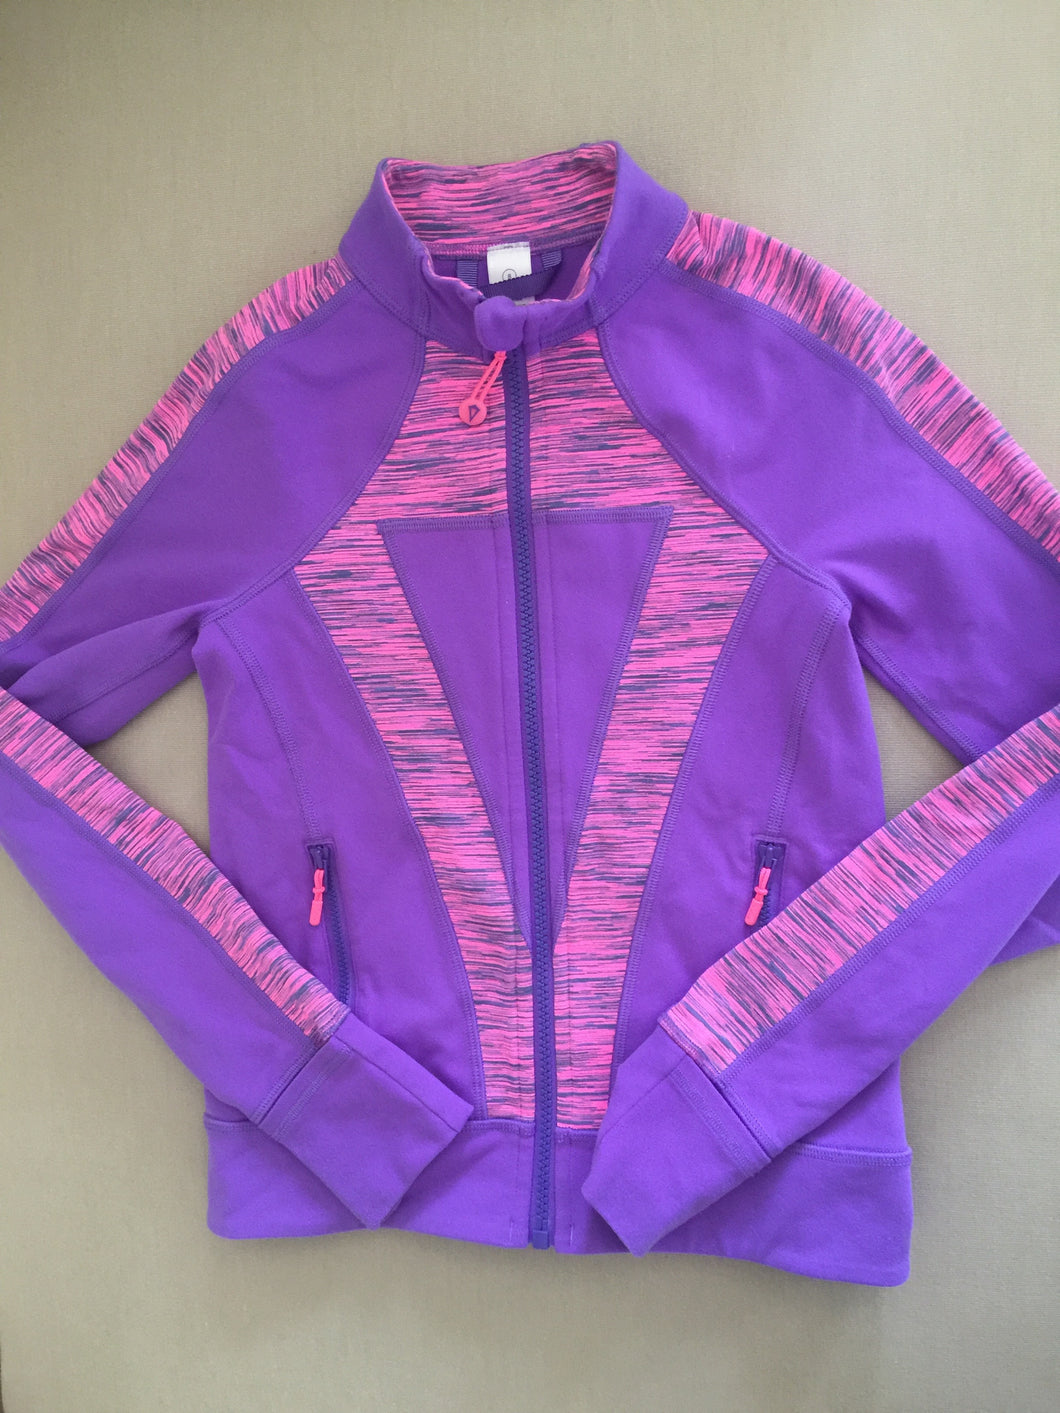 Purple and Pink Ivivva Jacket Size 8